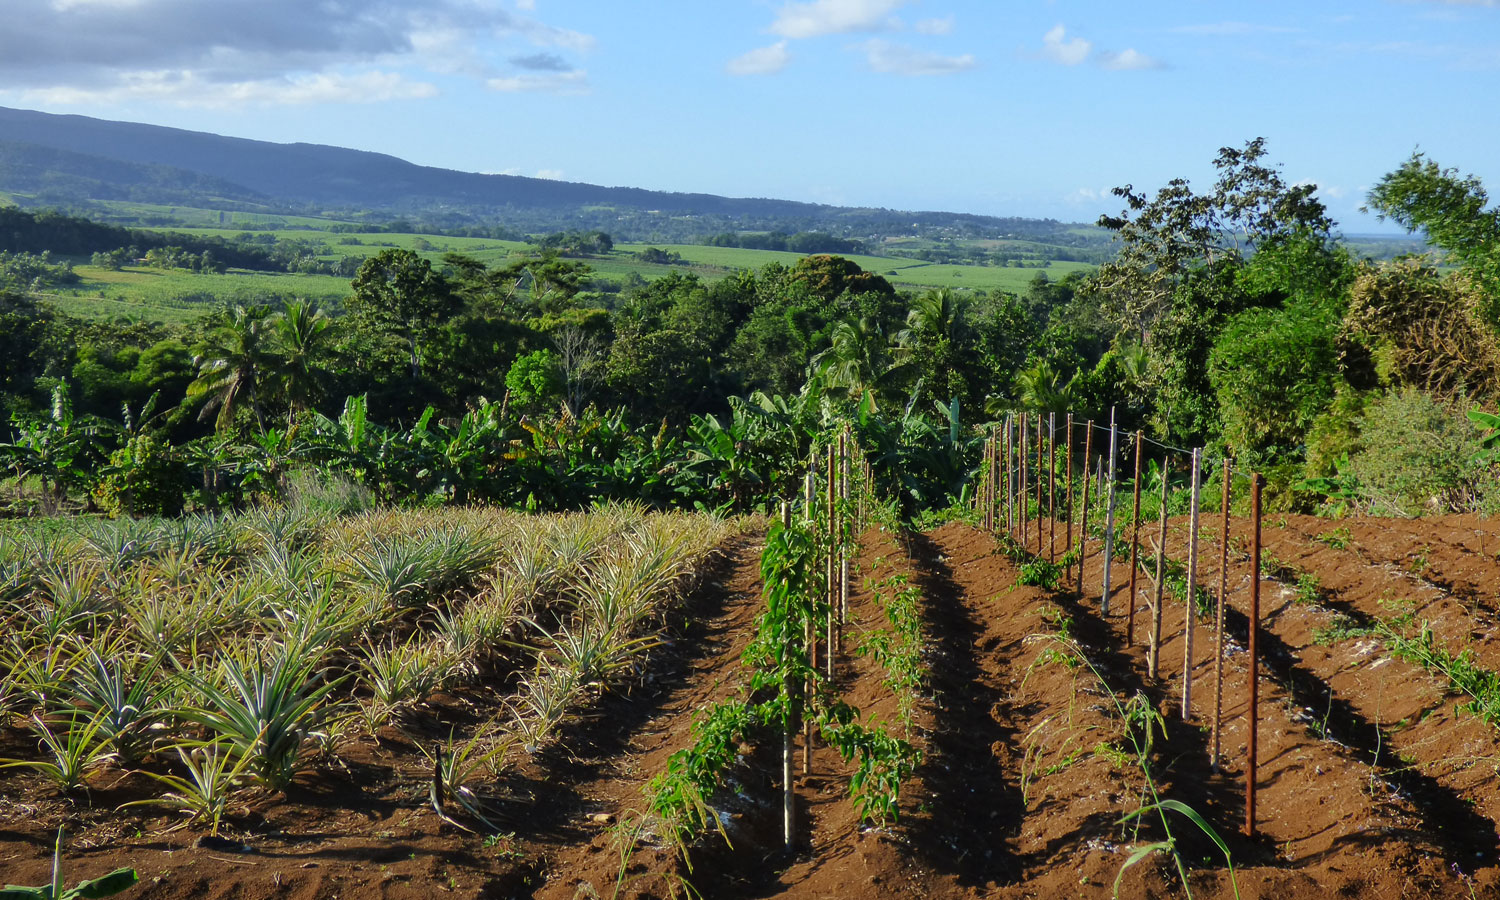 Diversified agriculture: fields with pineapples, yams and bananas (copyright: INRA Antilles Guyane)